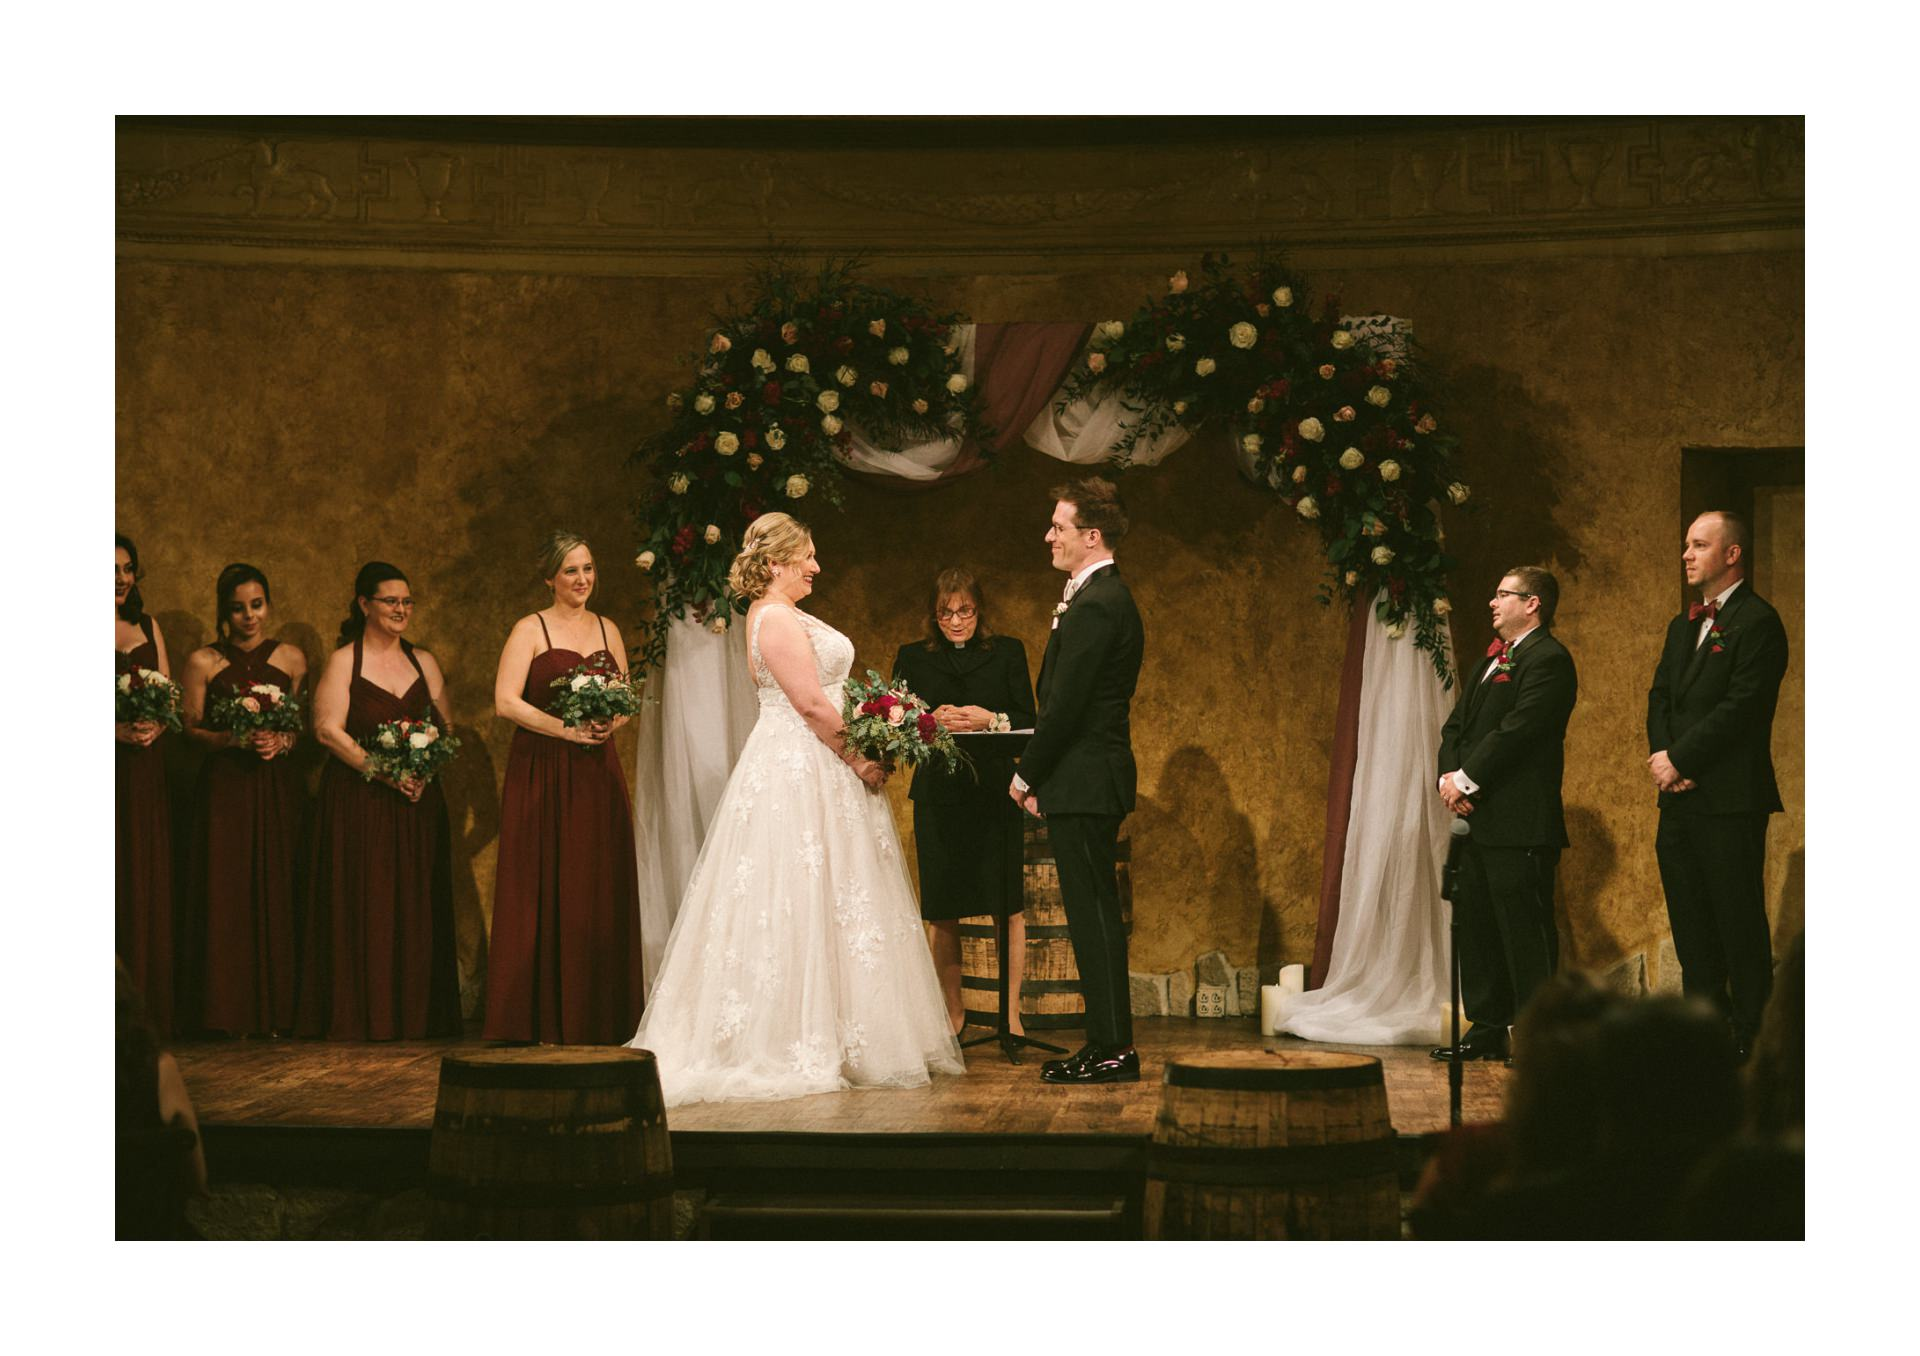 Cibreo Privato Wedding at Playhouse Square in Cleveland 1 49.jpg